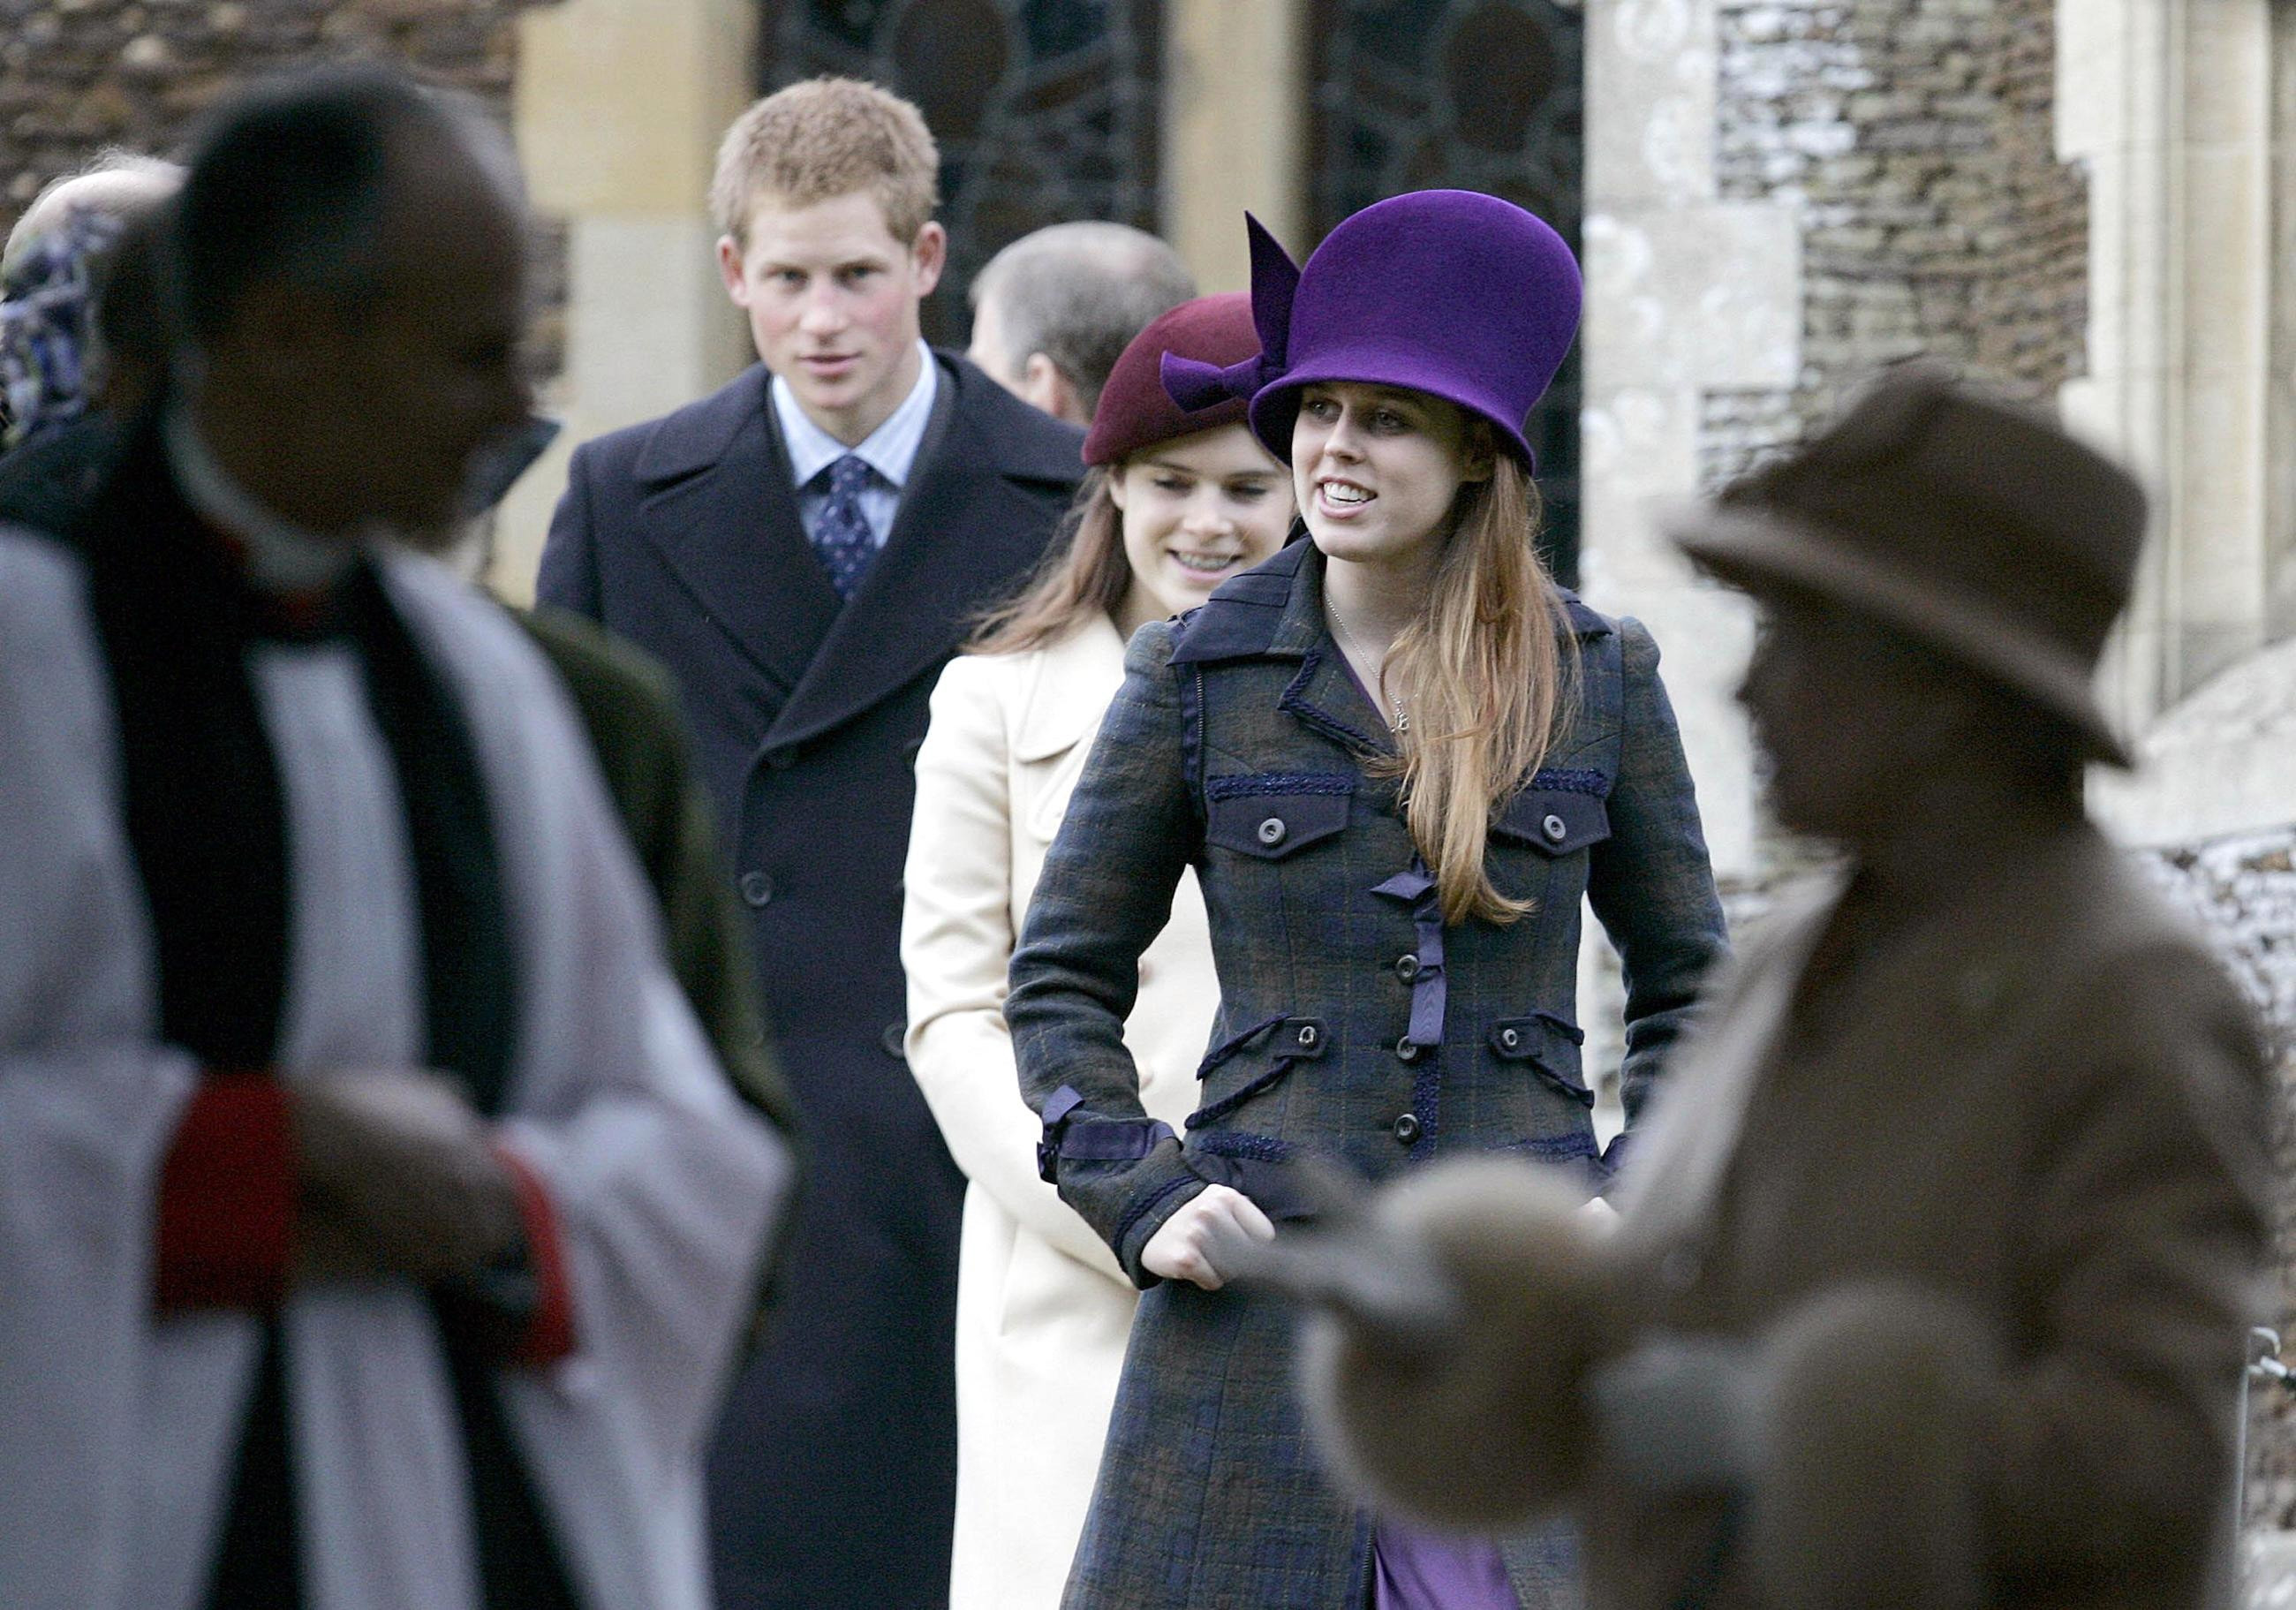 Princess Beatrice (front) Princess Eugenie and Prince Harry leave St Mary Magdalene Church, Sandringham, after attending the Christmas Day church service in 2005